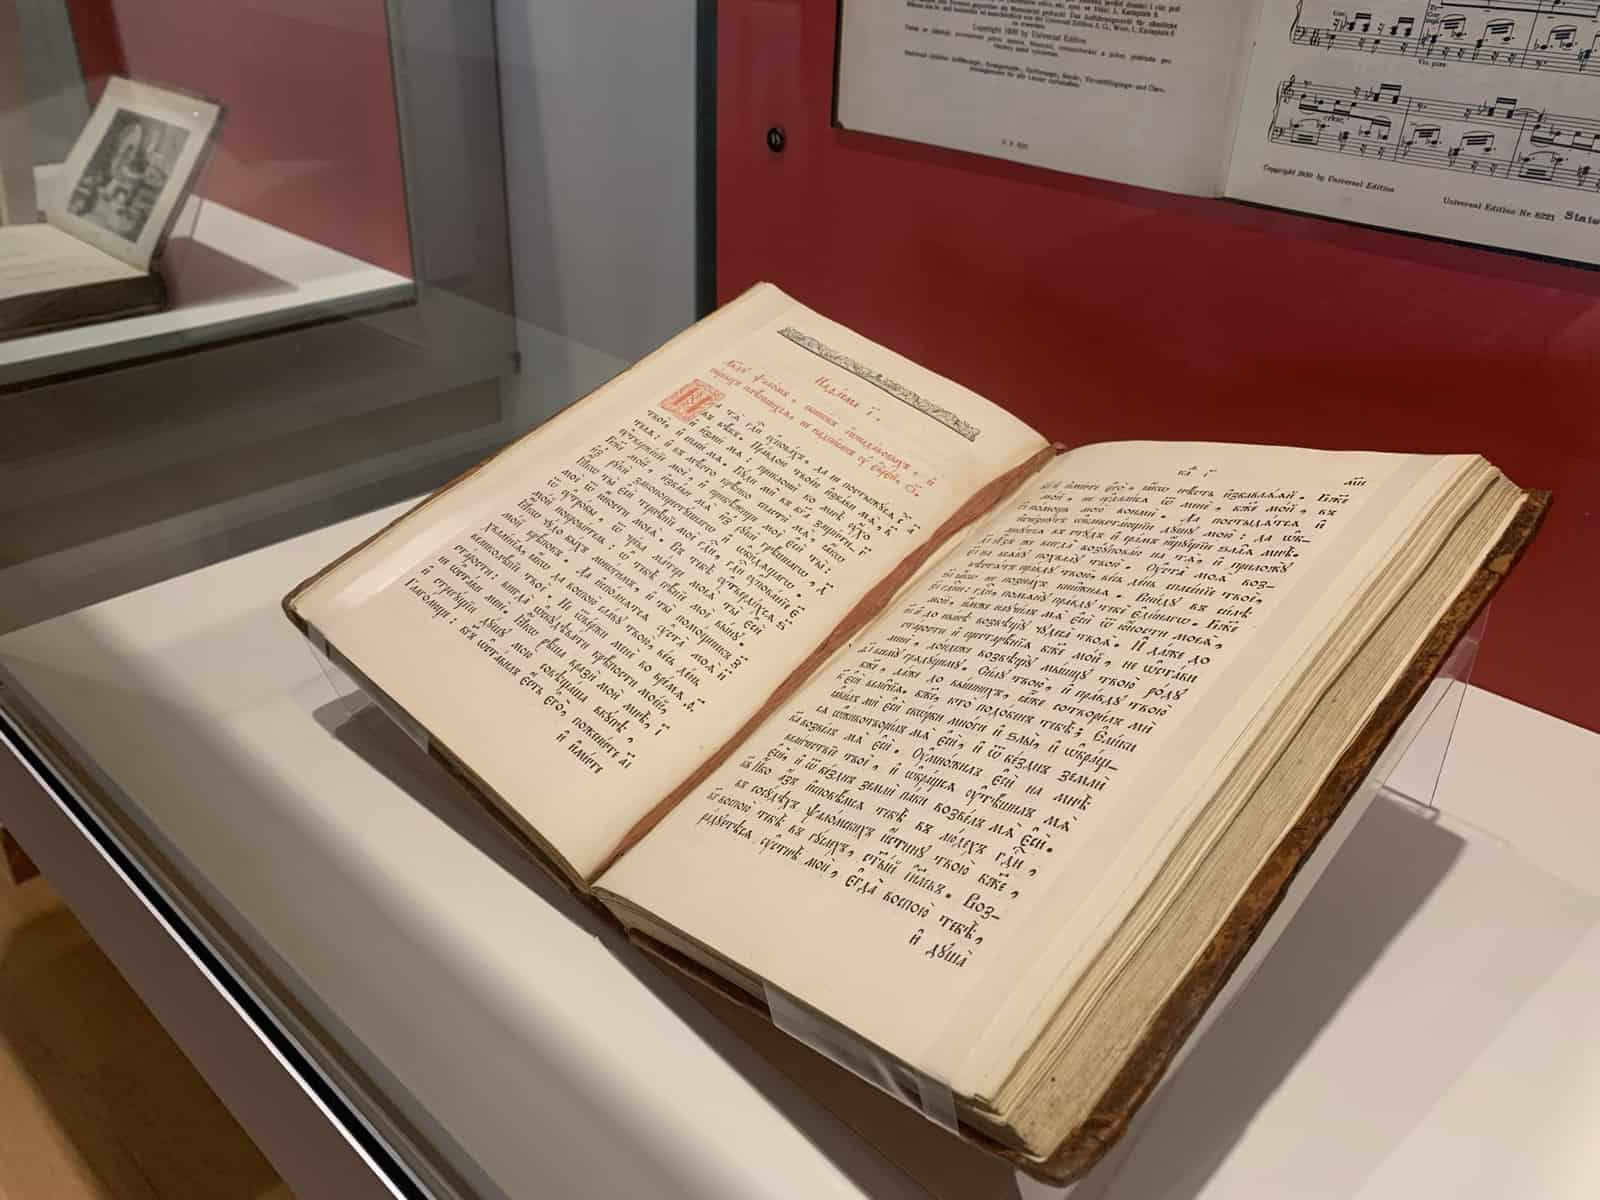 This 19th century book of Psalms is printed in kirillitsa, which is a traditional Russian script that mimics the earliest Russian writing and Church Slavonic of much earlier writings. The book is open, displaying full pages of Russian script.